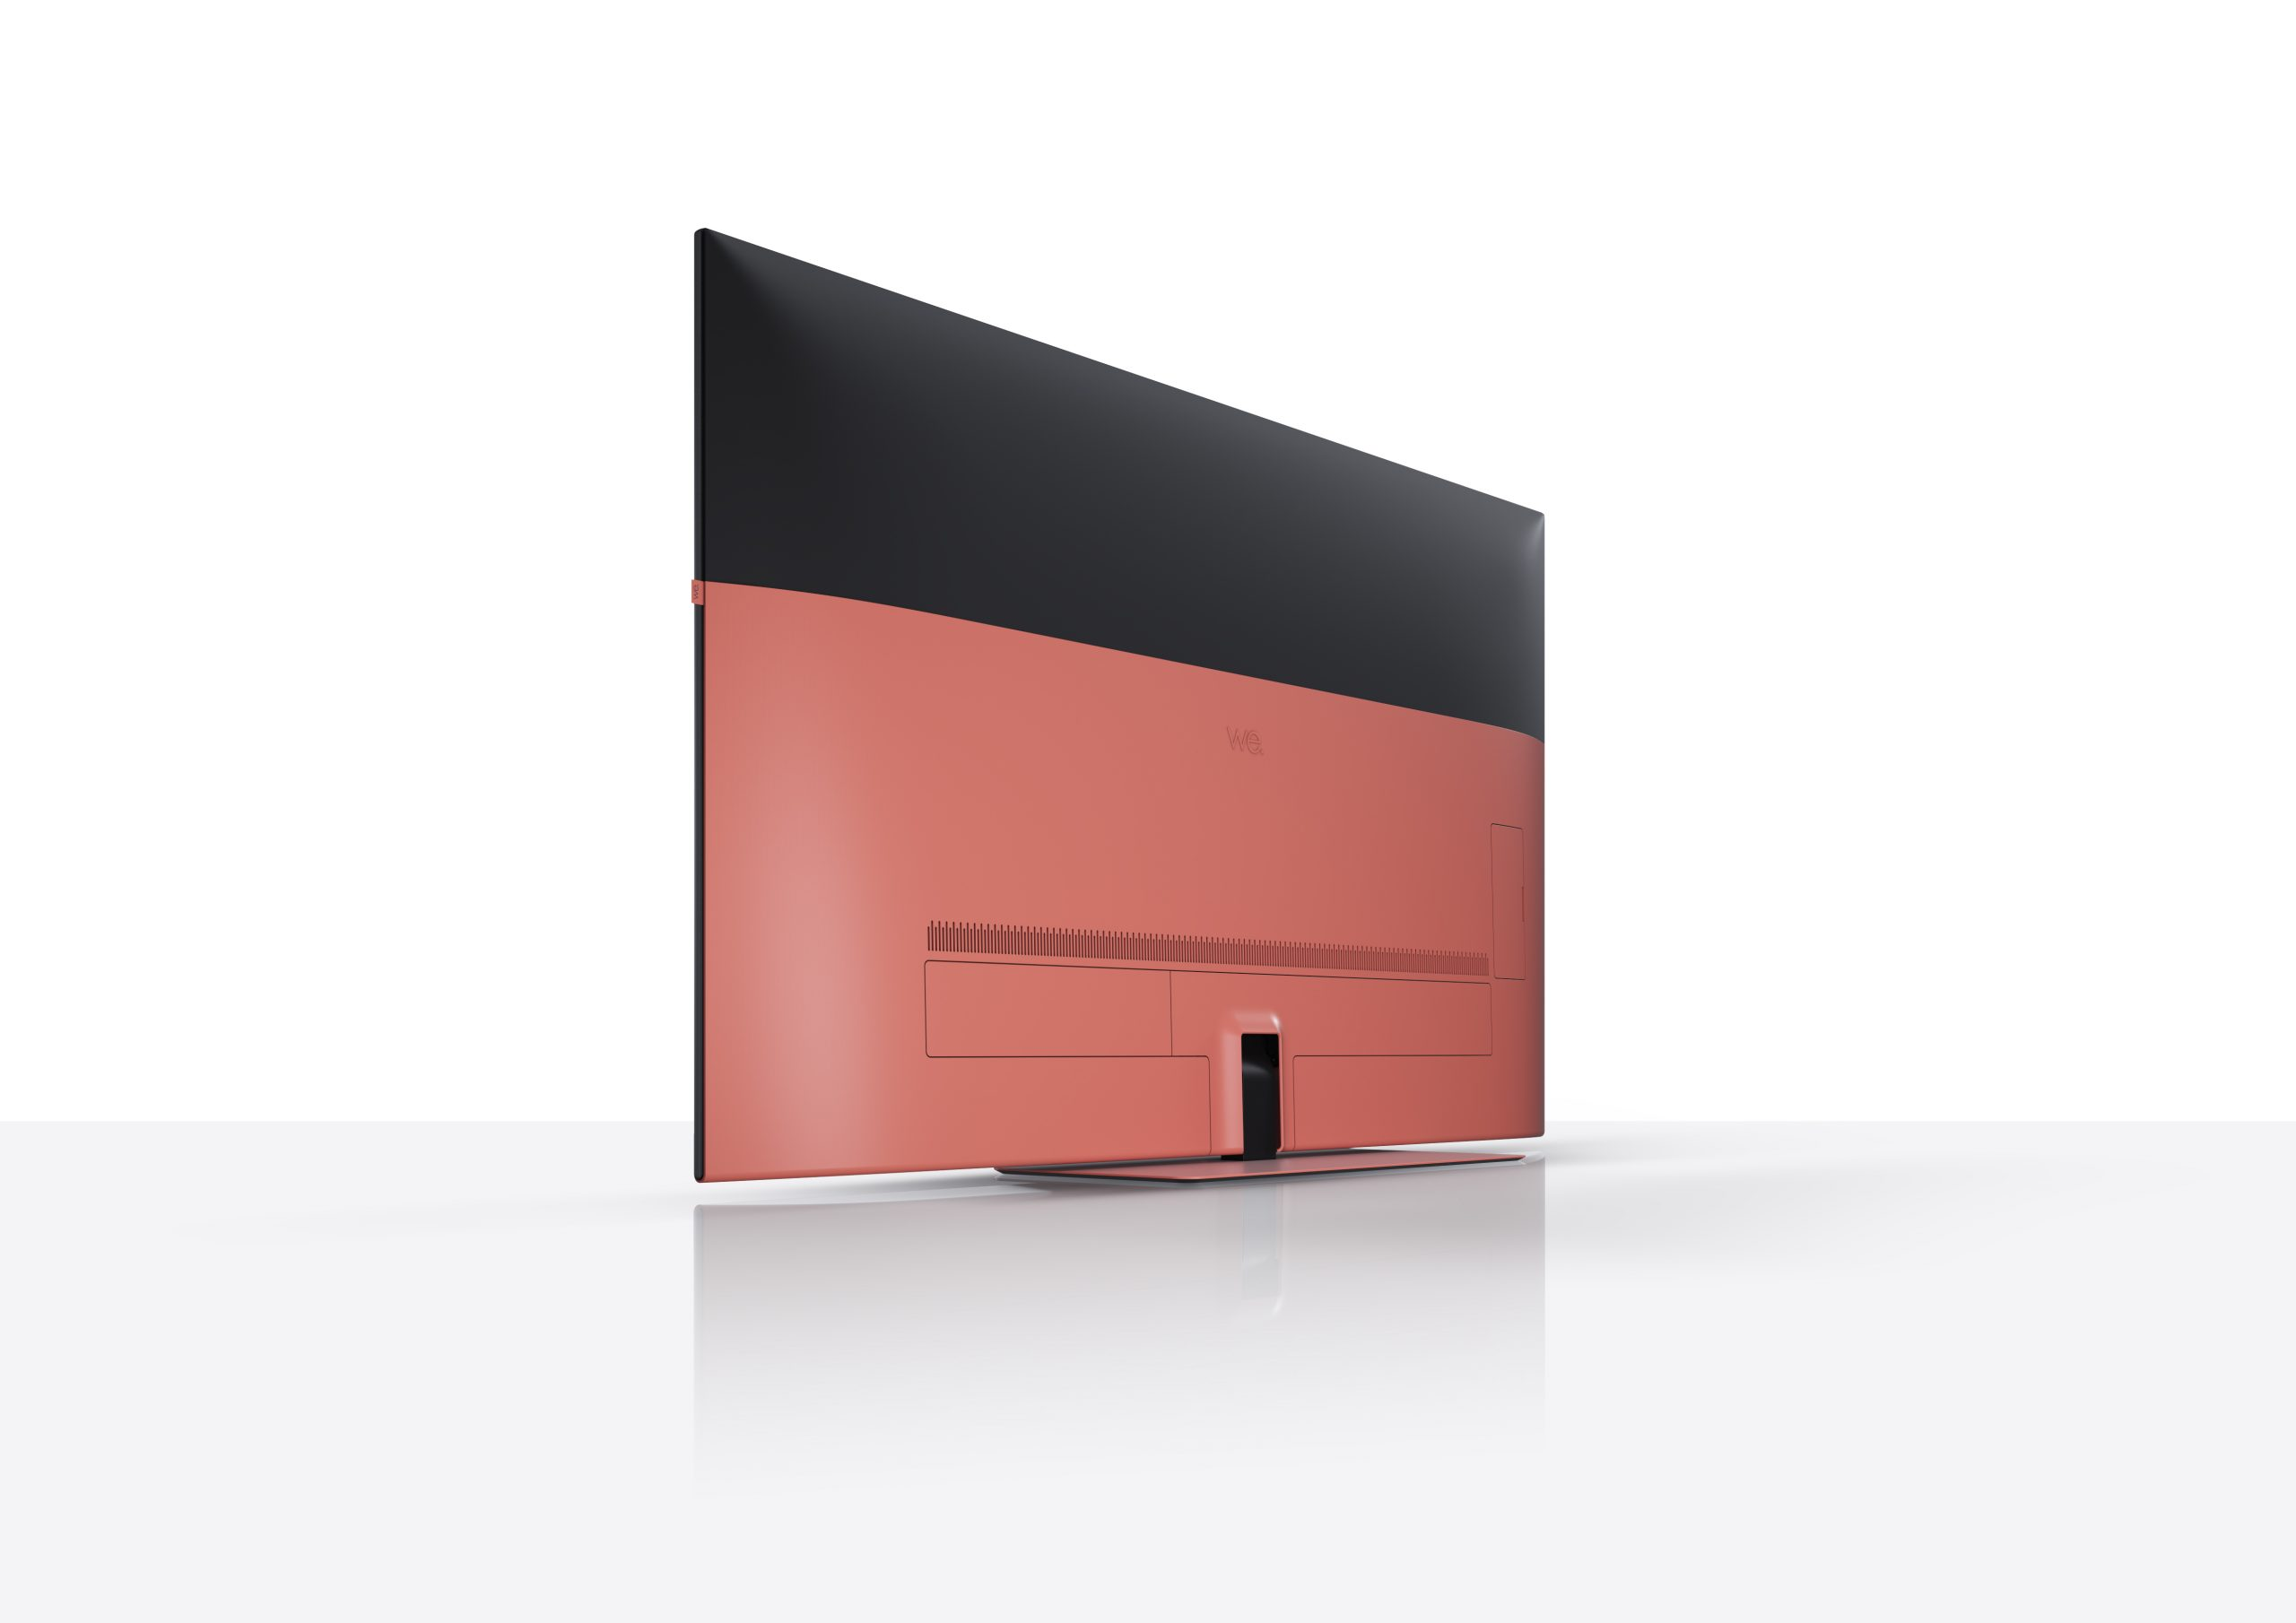 Loewe we 55 tablestand back Living Coral scaled EXCLUSIVE: Loewe Launch We.by Loewe Brand Of Speakers Headphones & New We.TVs With Built In Soundbars